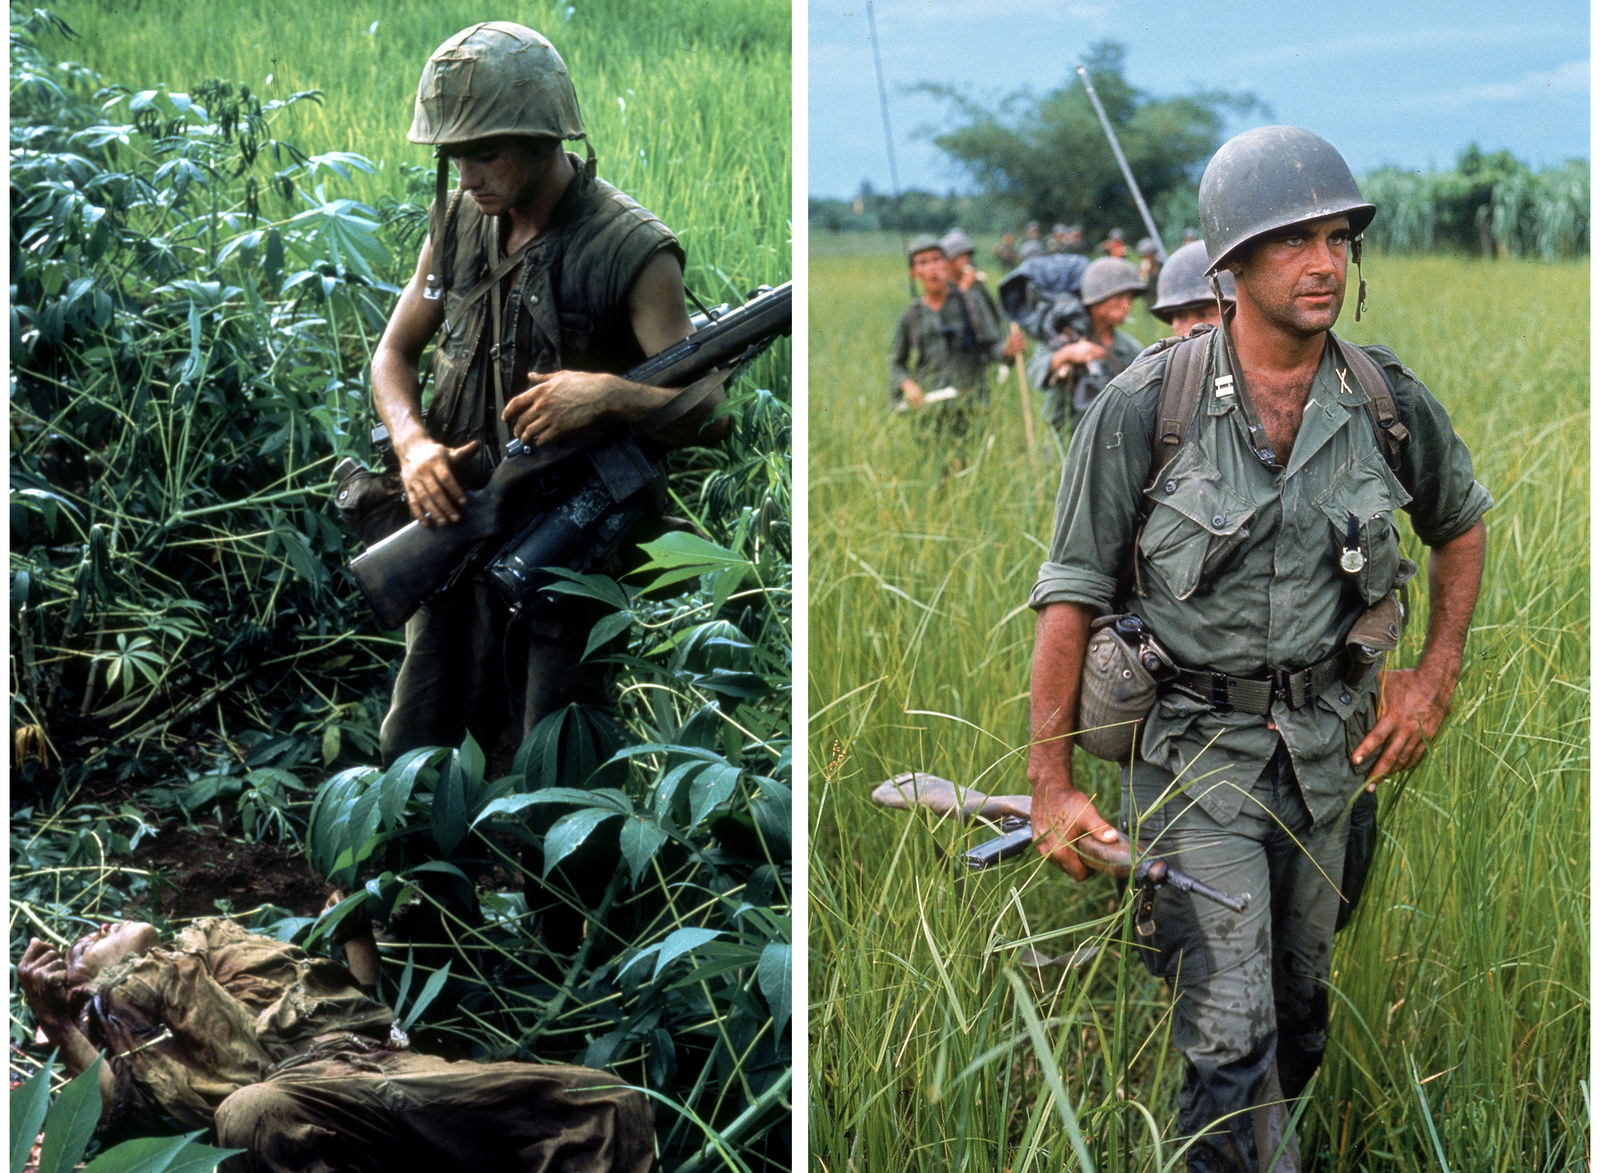 20 Harrowing Pictures From The Front Lines Of Vietnam